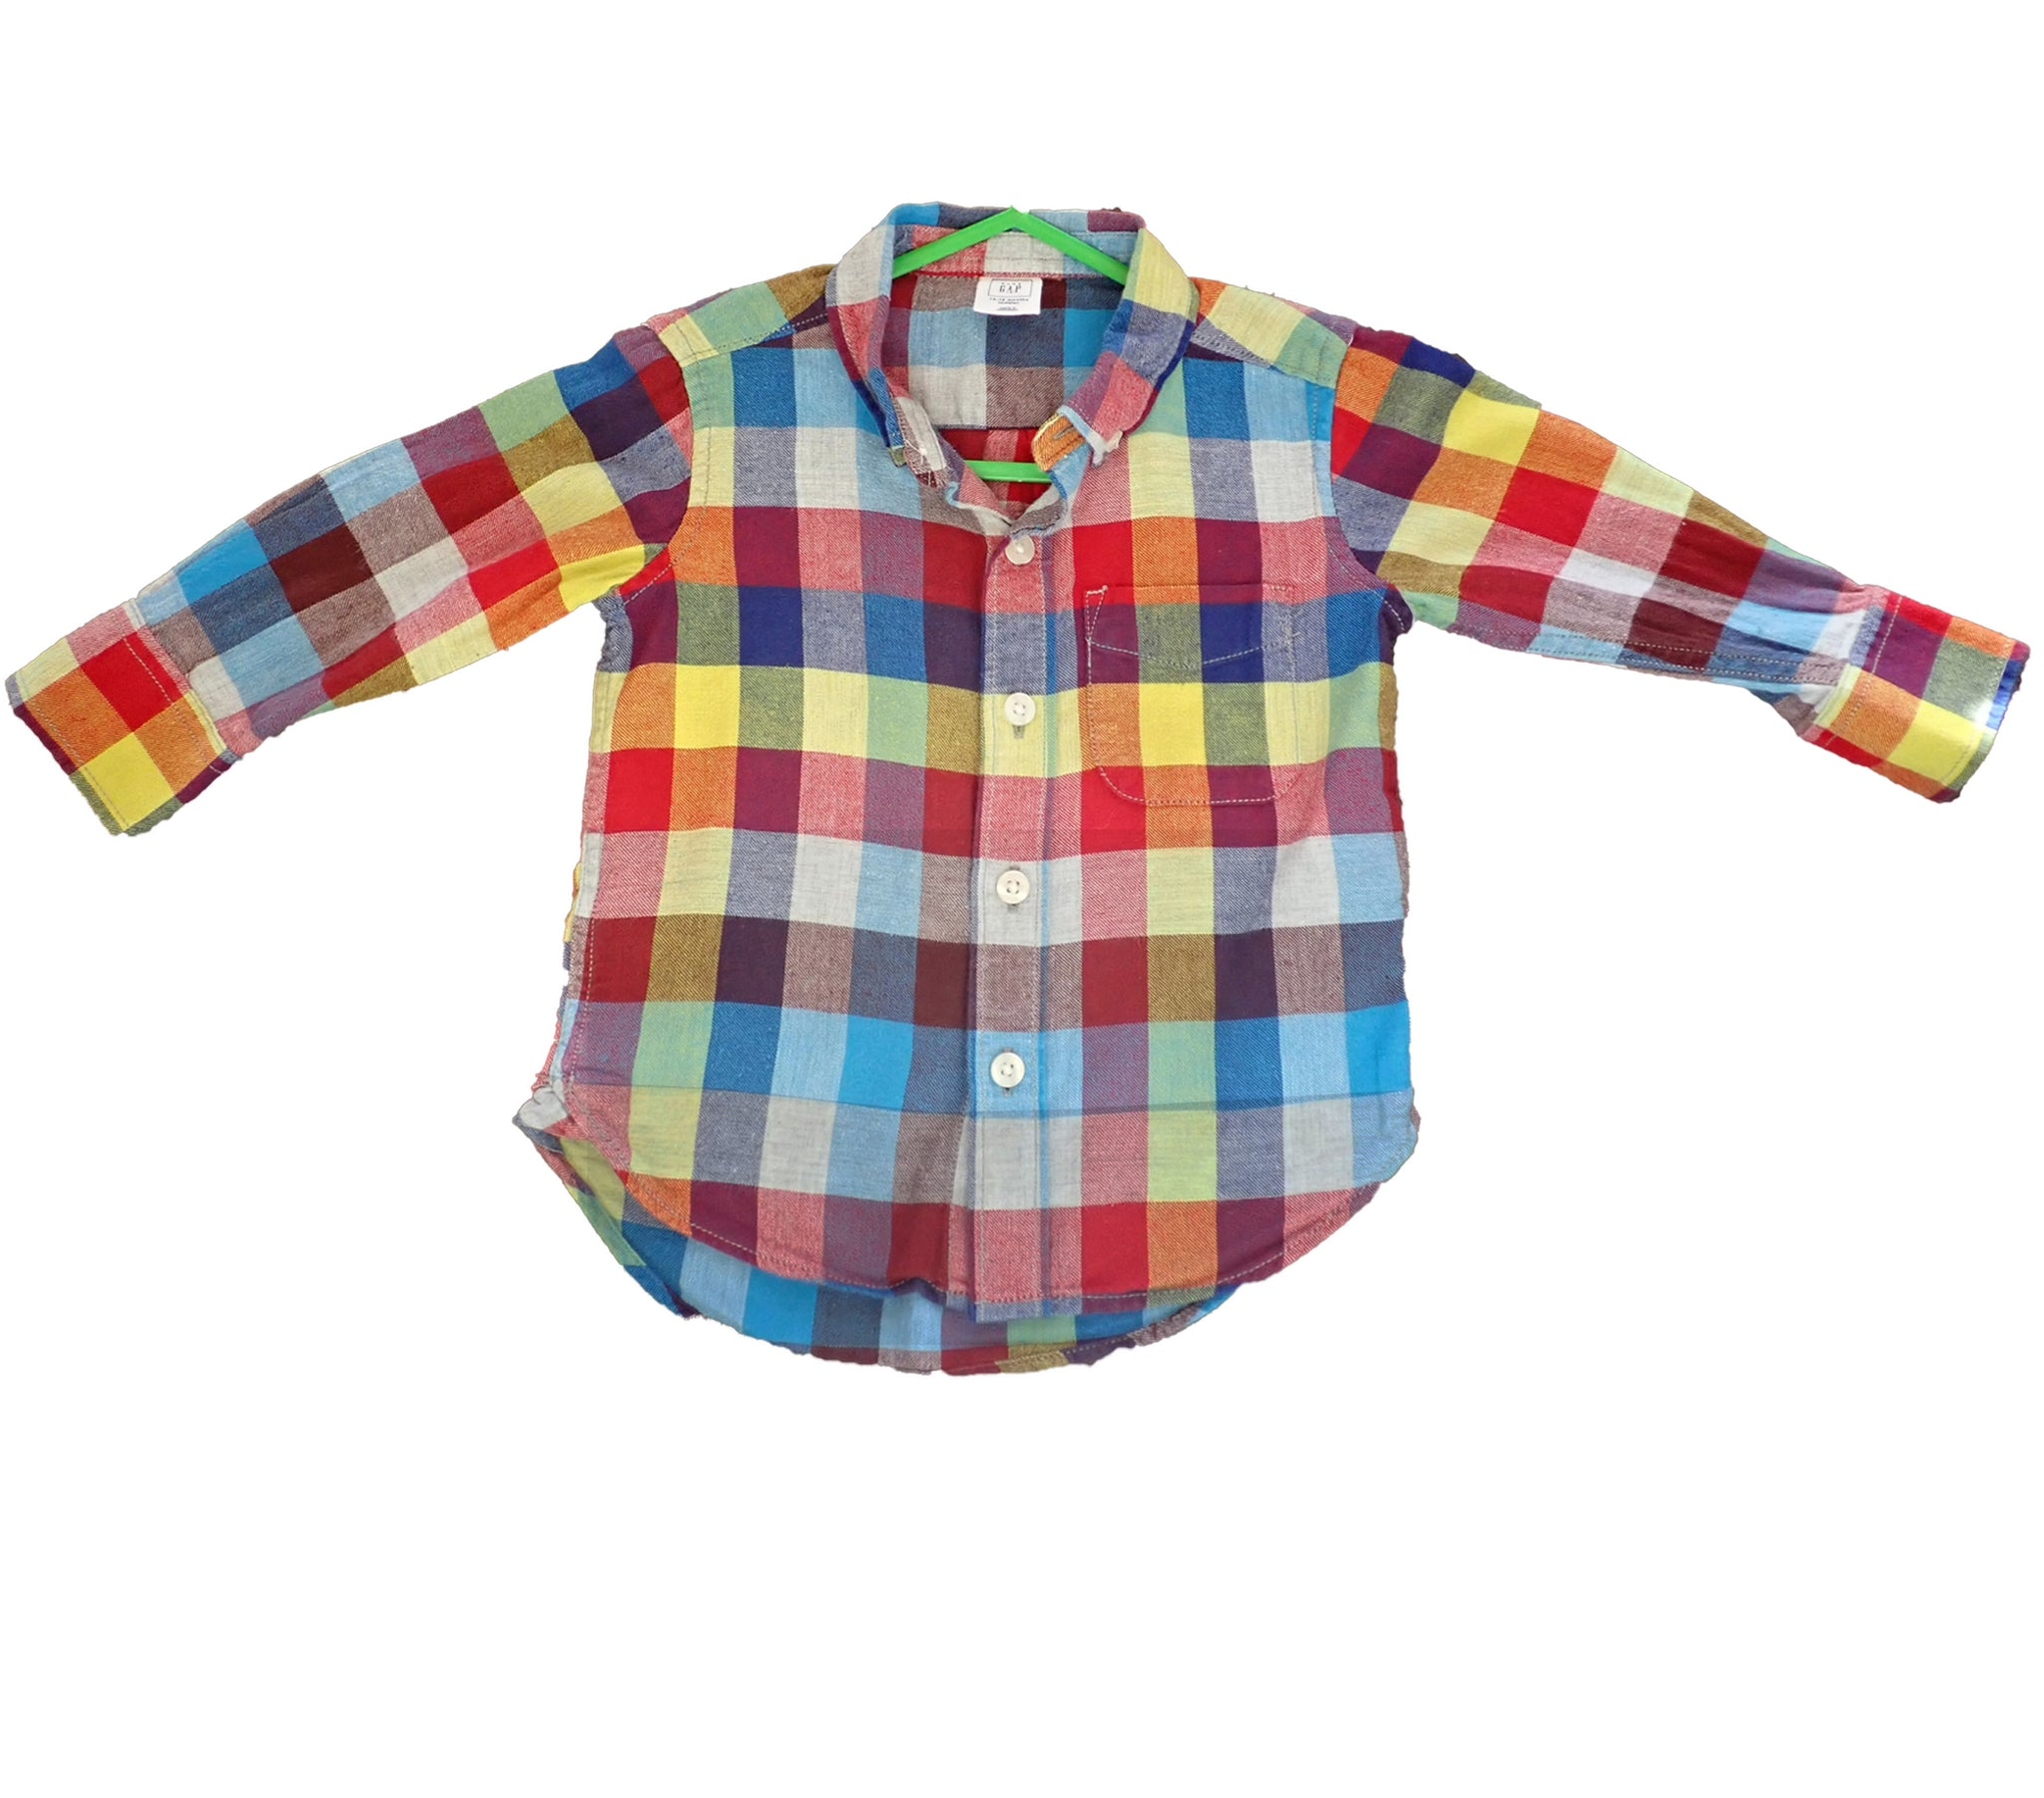 Baby Gap chequered shirt front